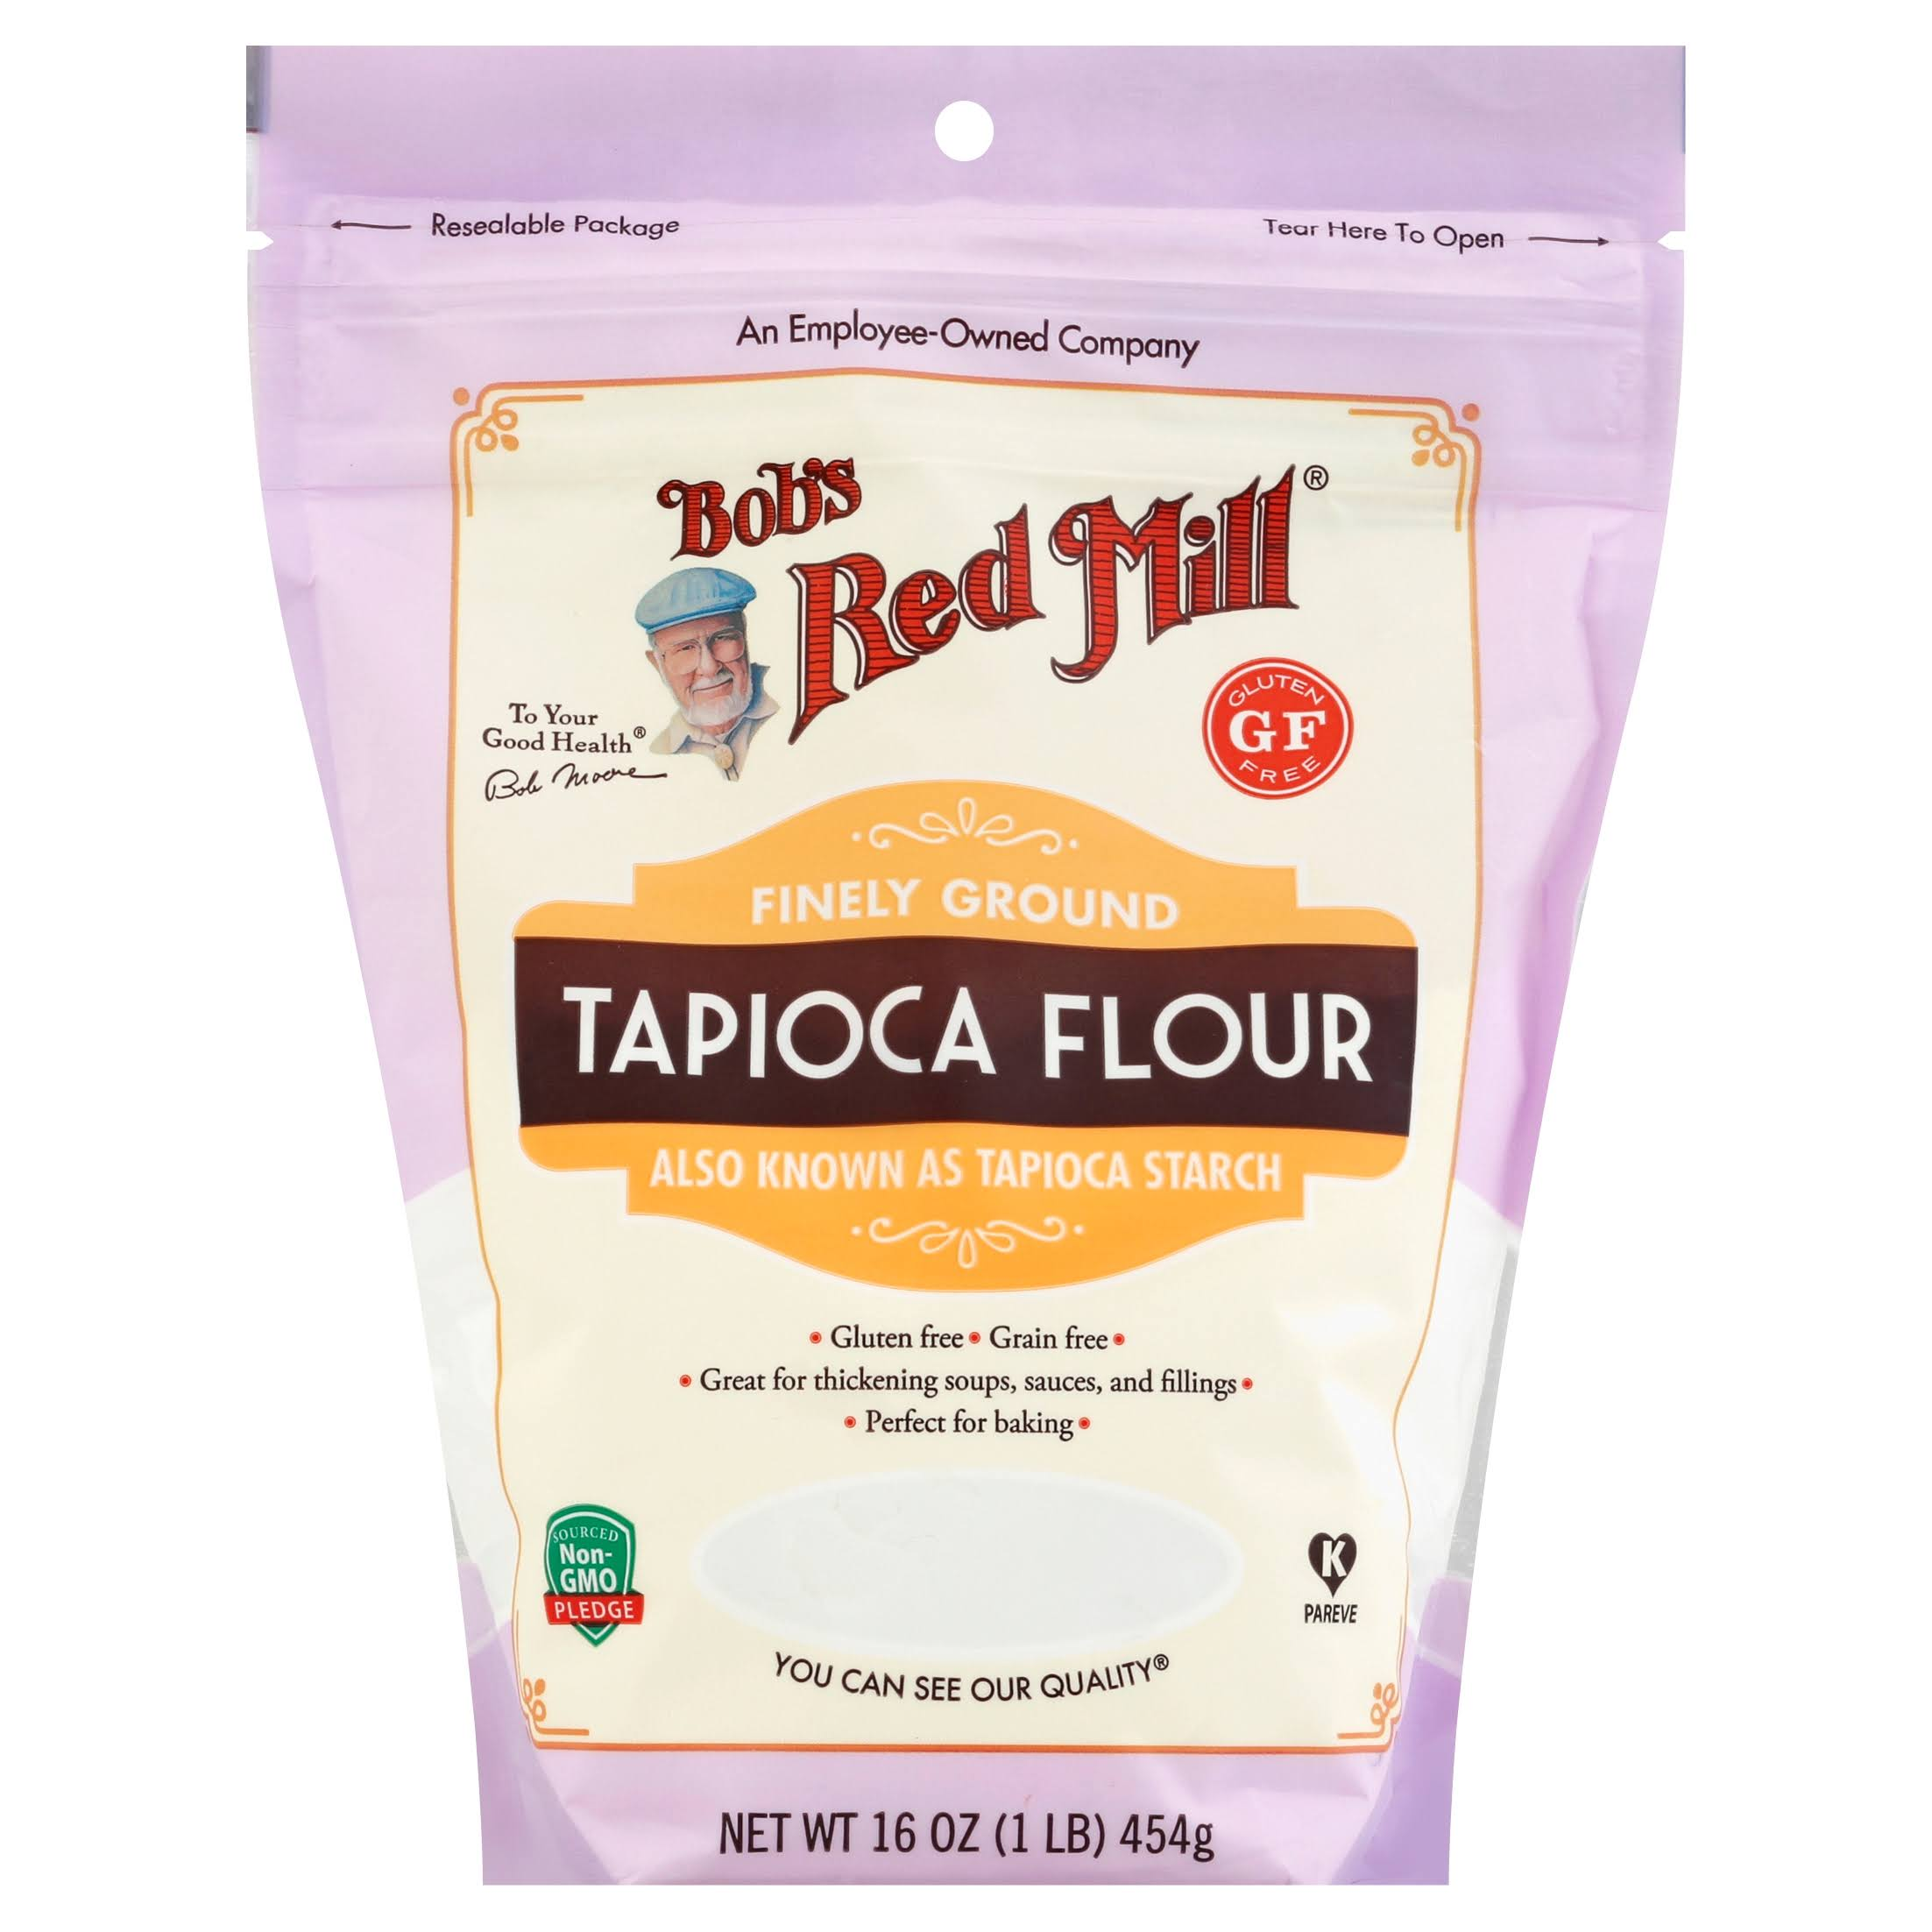 Bob's Red Mill Tapioca Flour - 16 oz